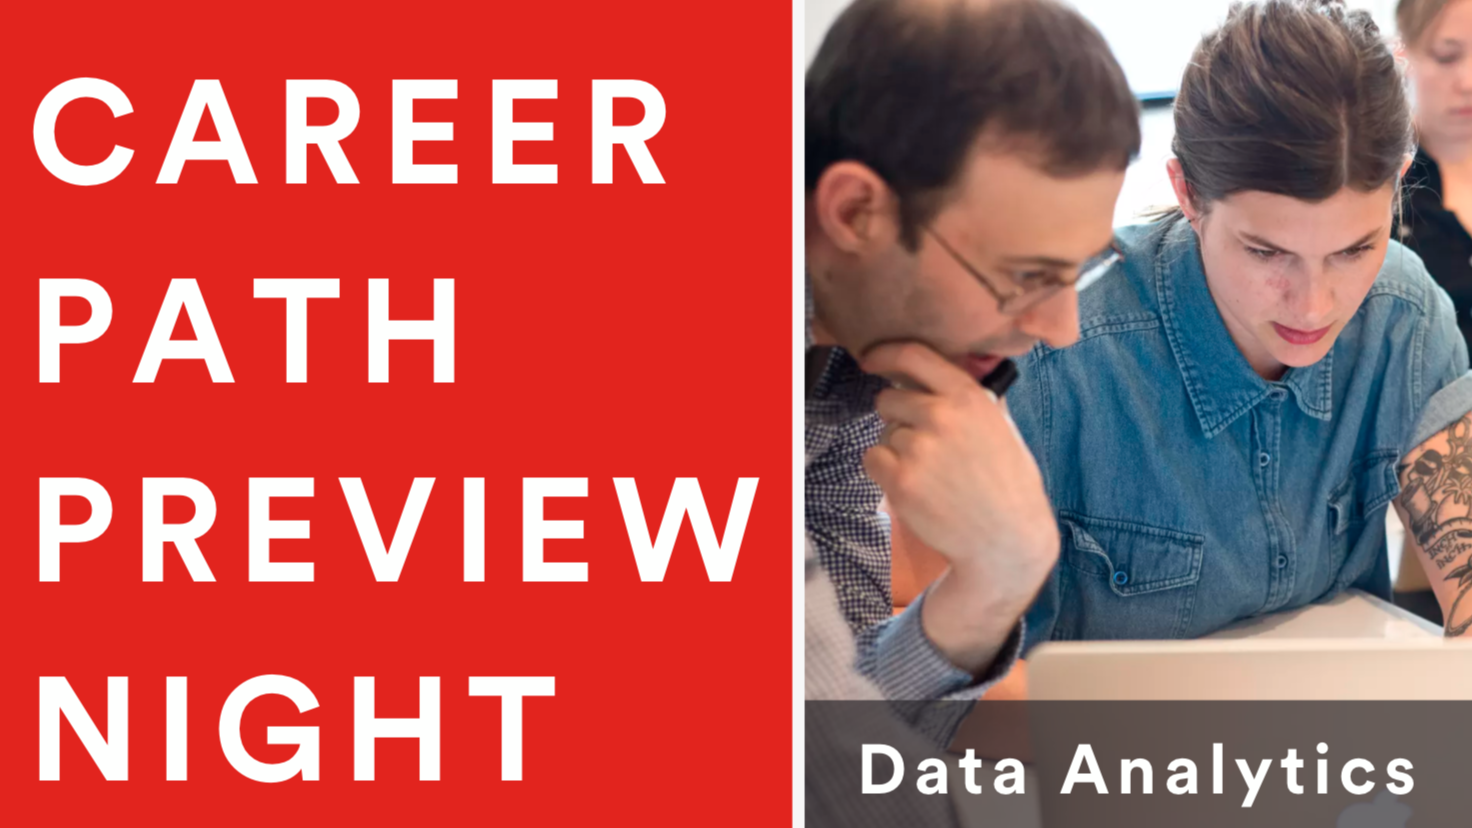 Career Path Preview Night: Data Analytics